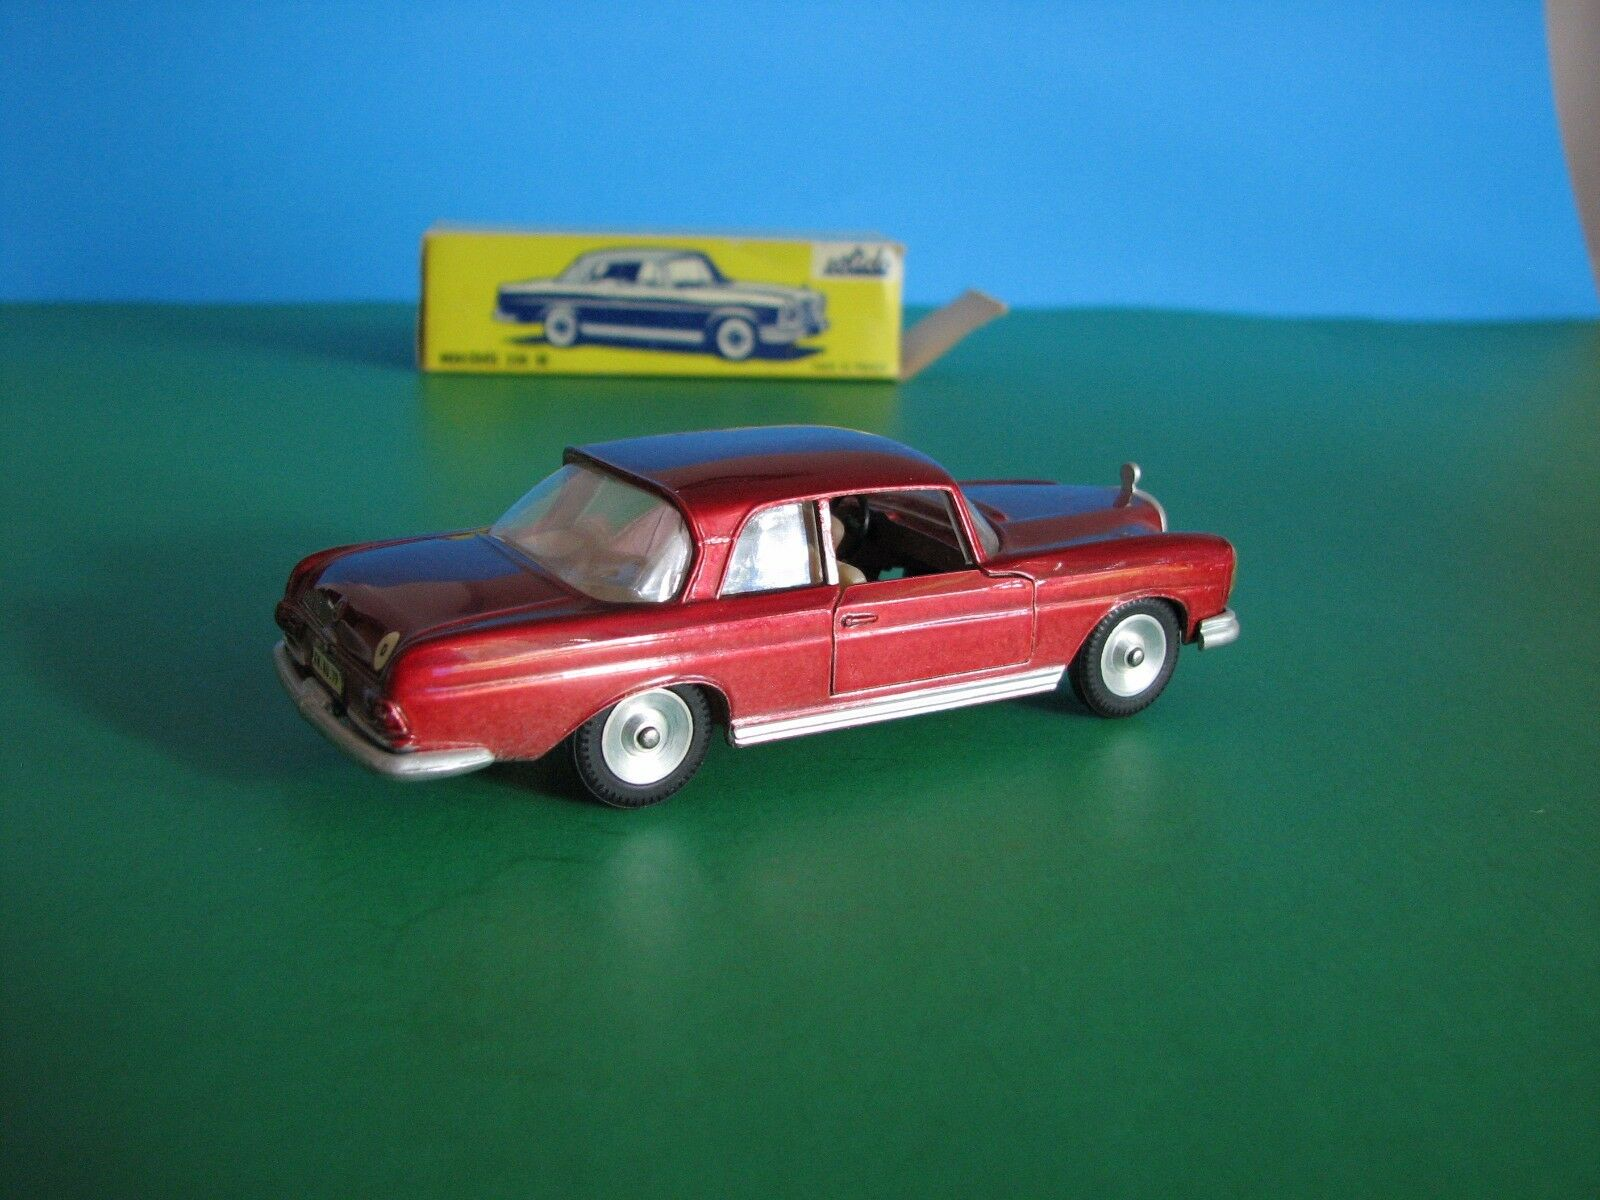 SOLIDO  126, Candy Apple rouge MERCEDES 220SE, échelle 1 43 DIECAST, made in France